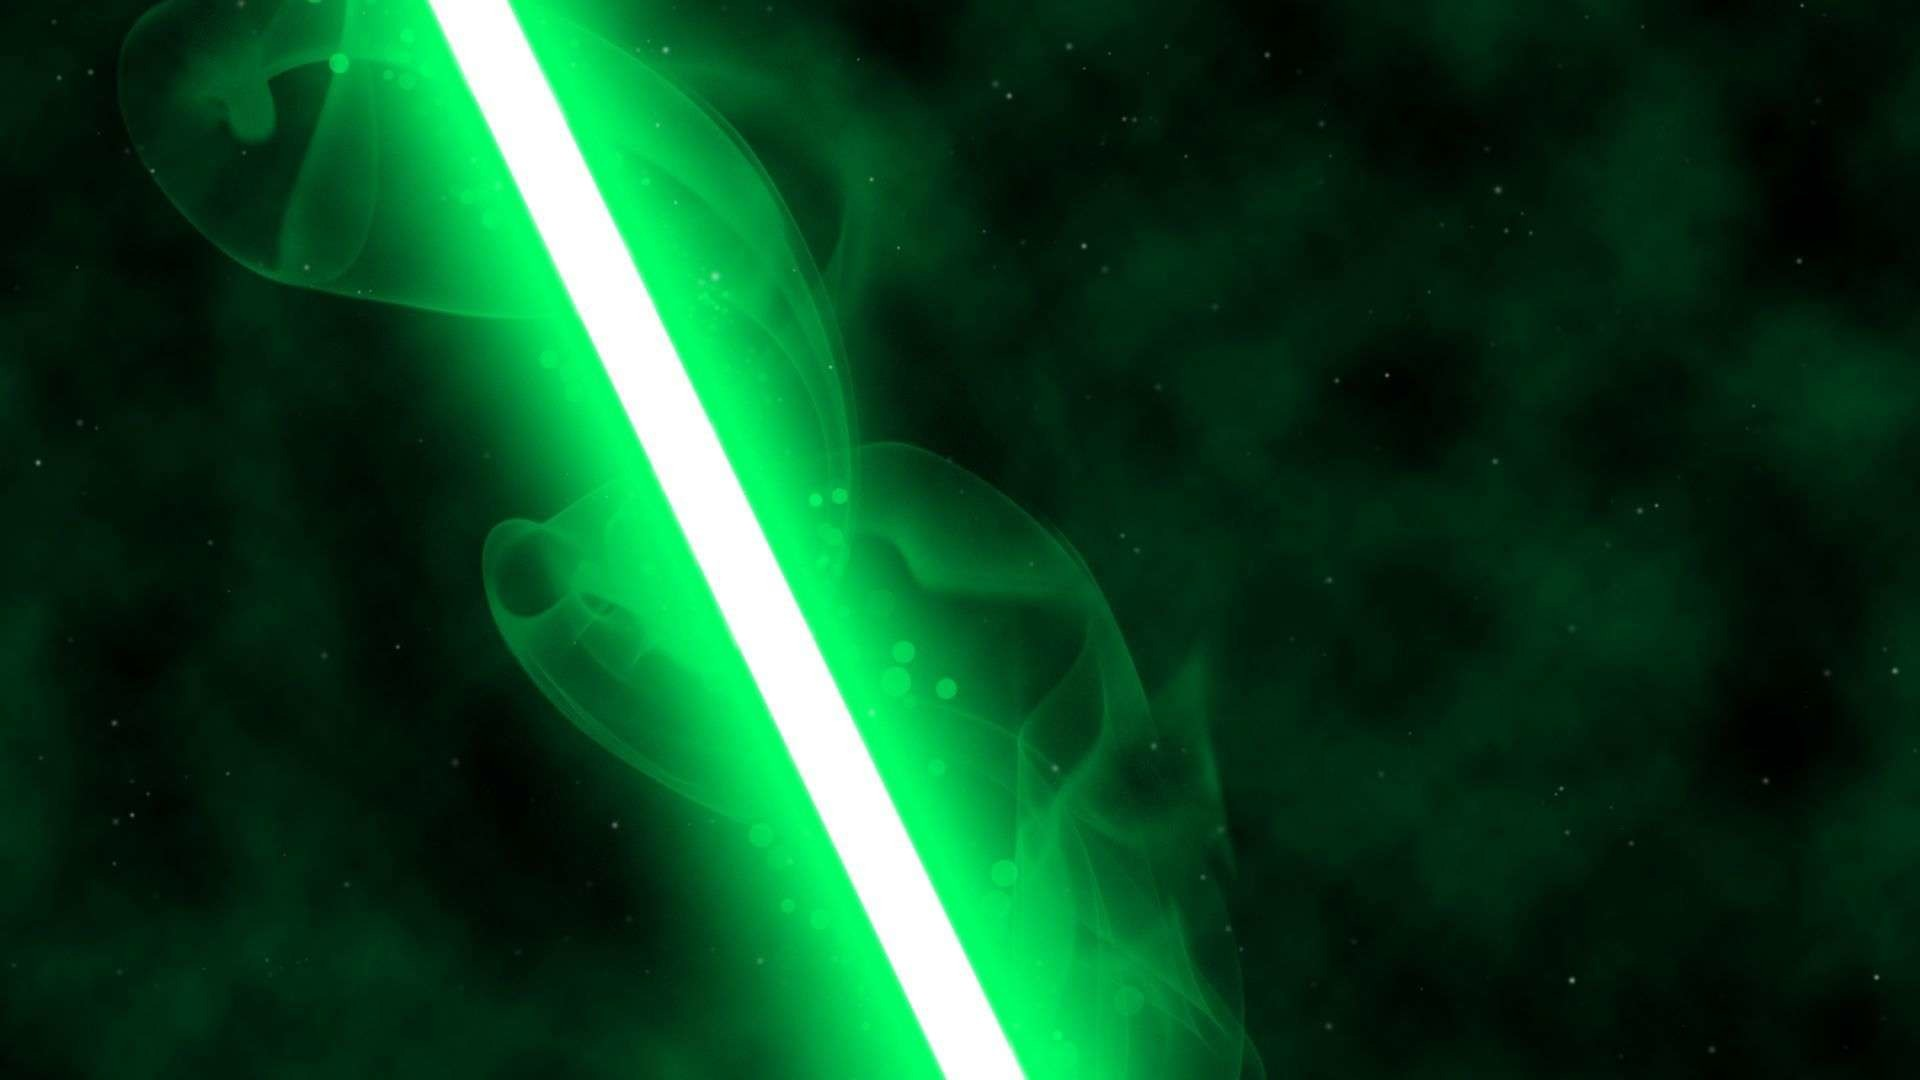 1920x1080 green lightsaber wallpaper